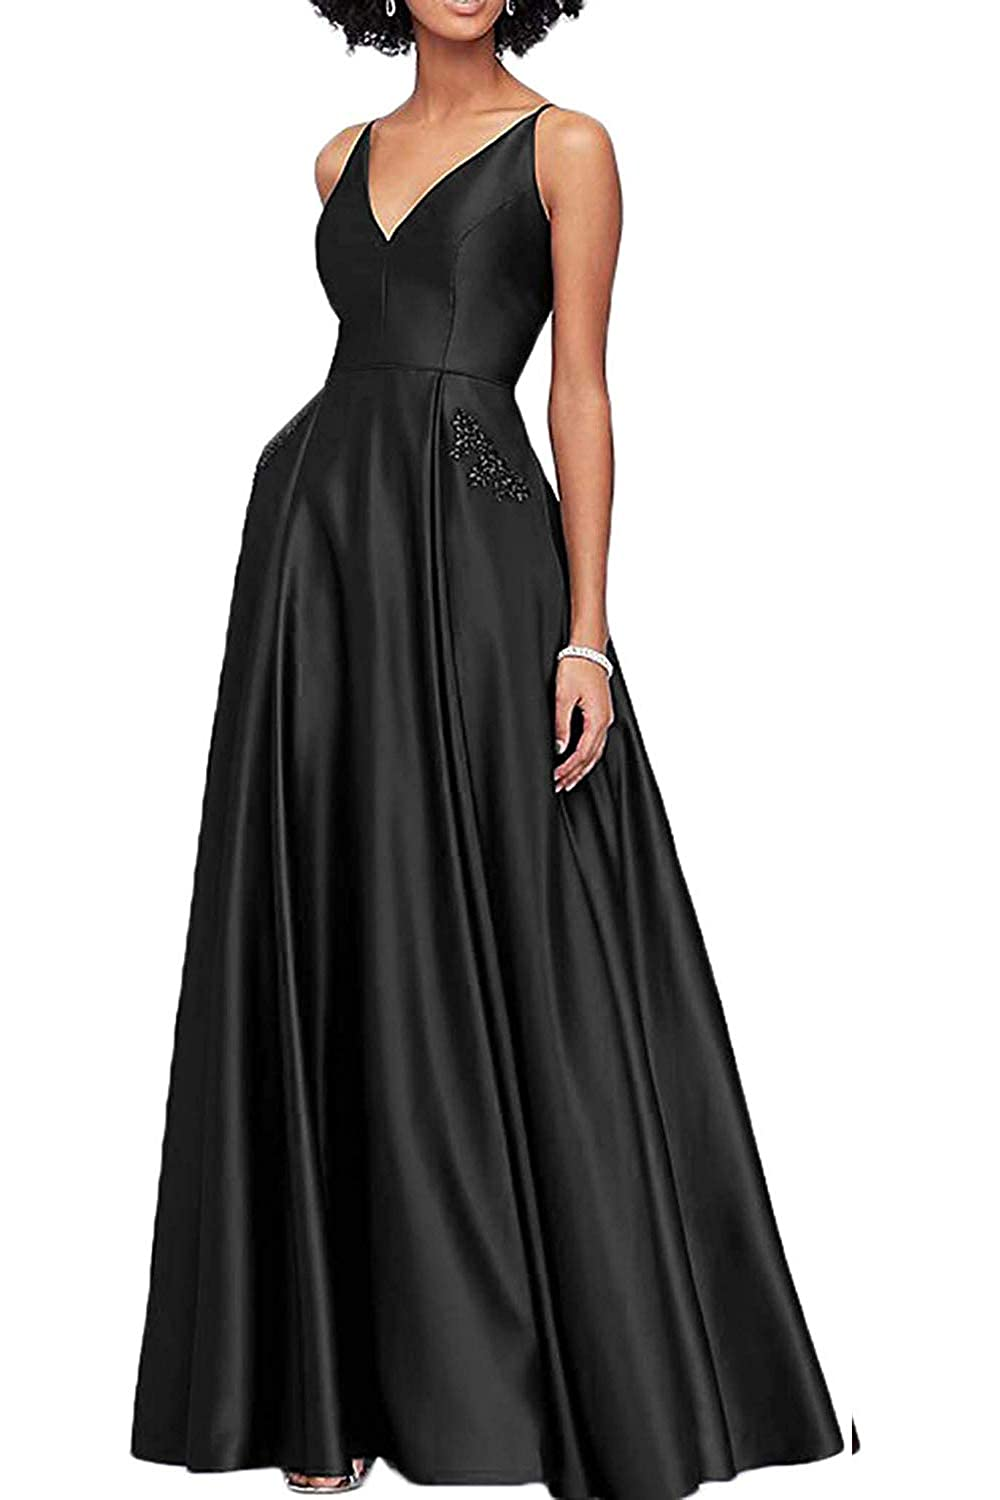 Black WHLWHL Beaded Long Ball Gown Prom Dresses for Women 2019 Satin V Neckline with Pockets